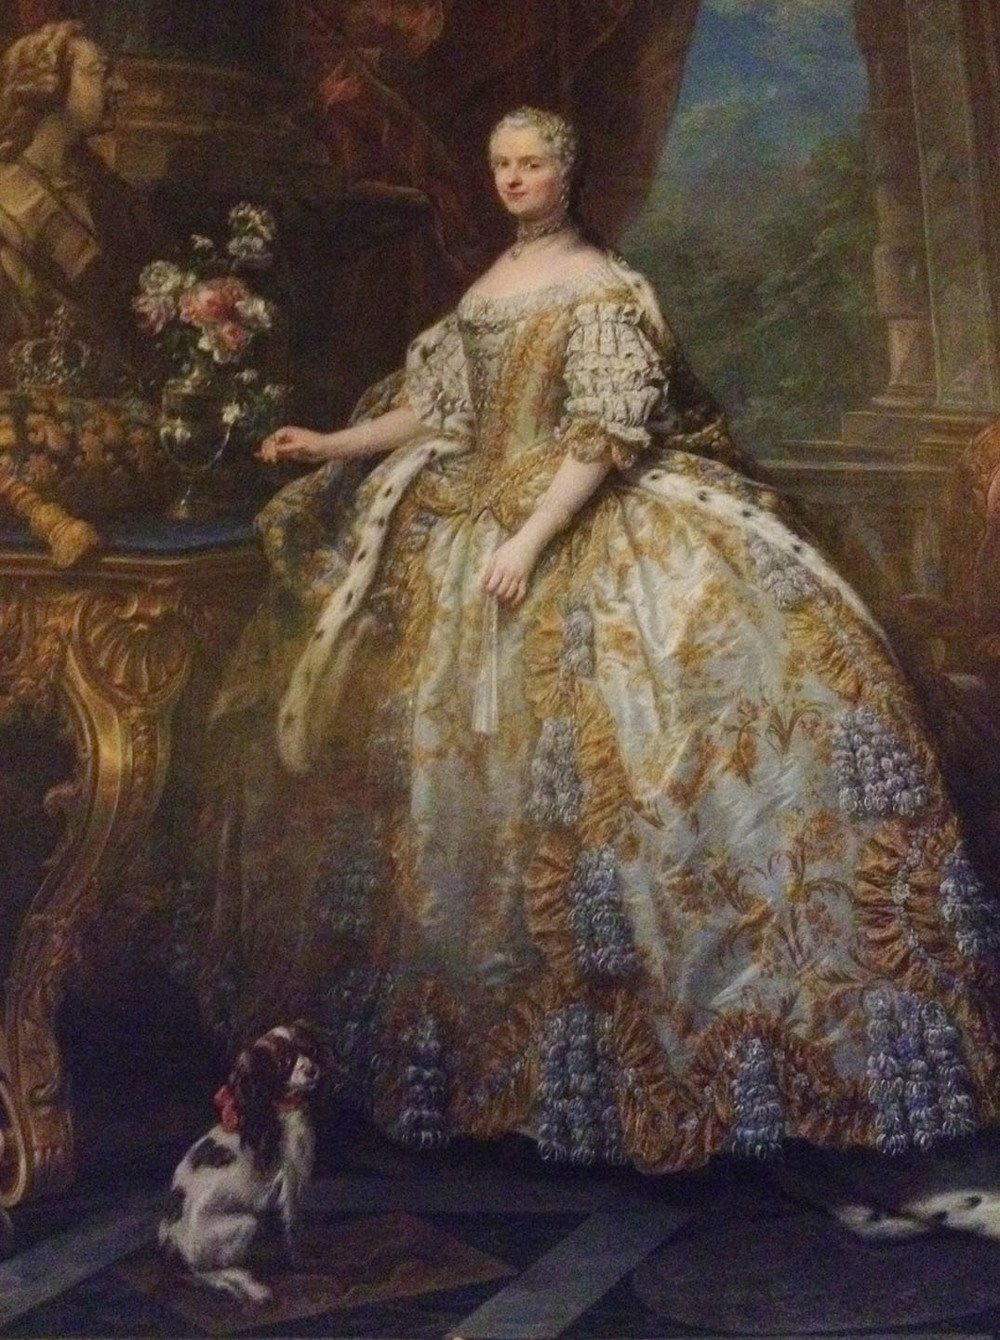 Royal portrait with Spaniel at Versailles